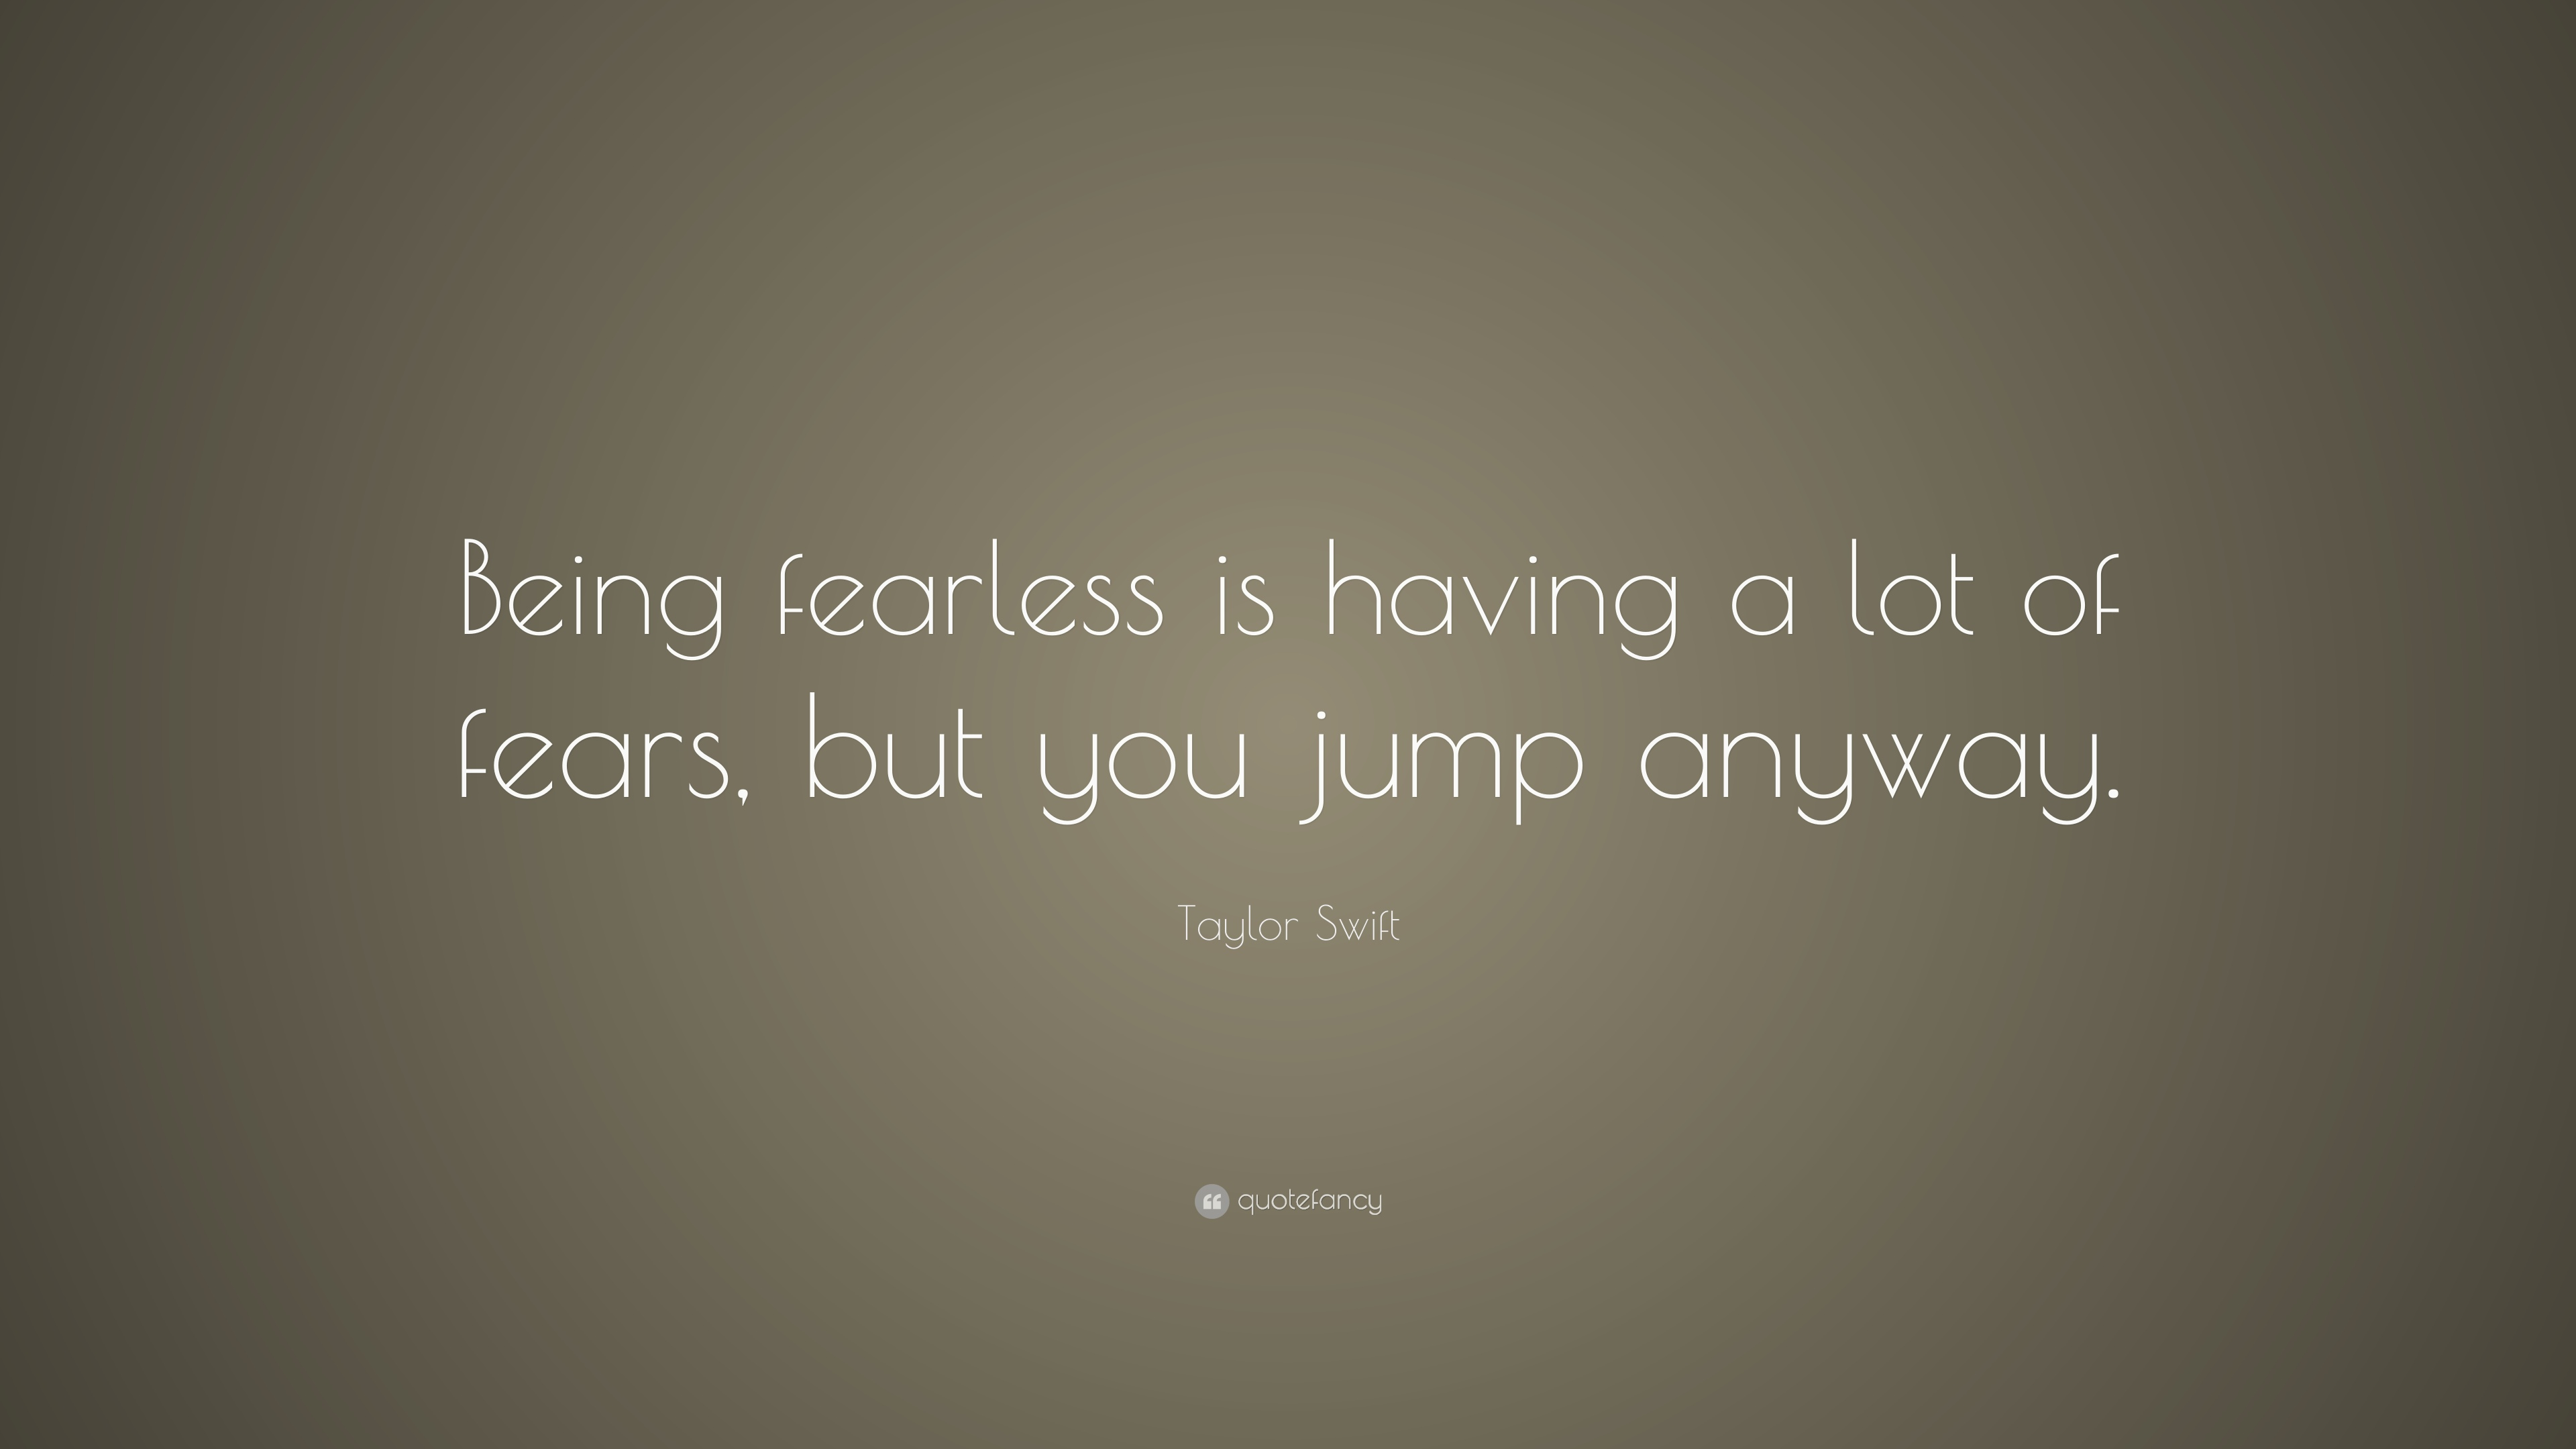 Taylor Swift Quote Being Fearless Is Having A Lot Of Fears But